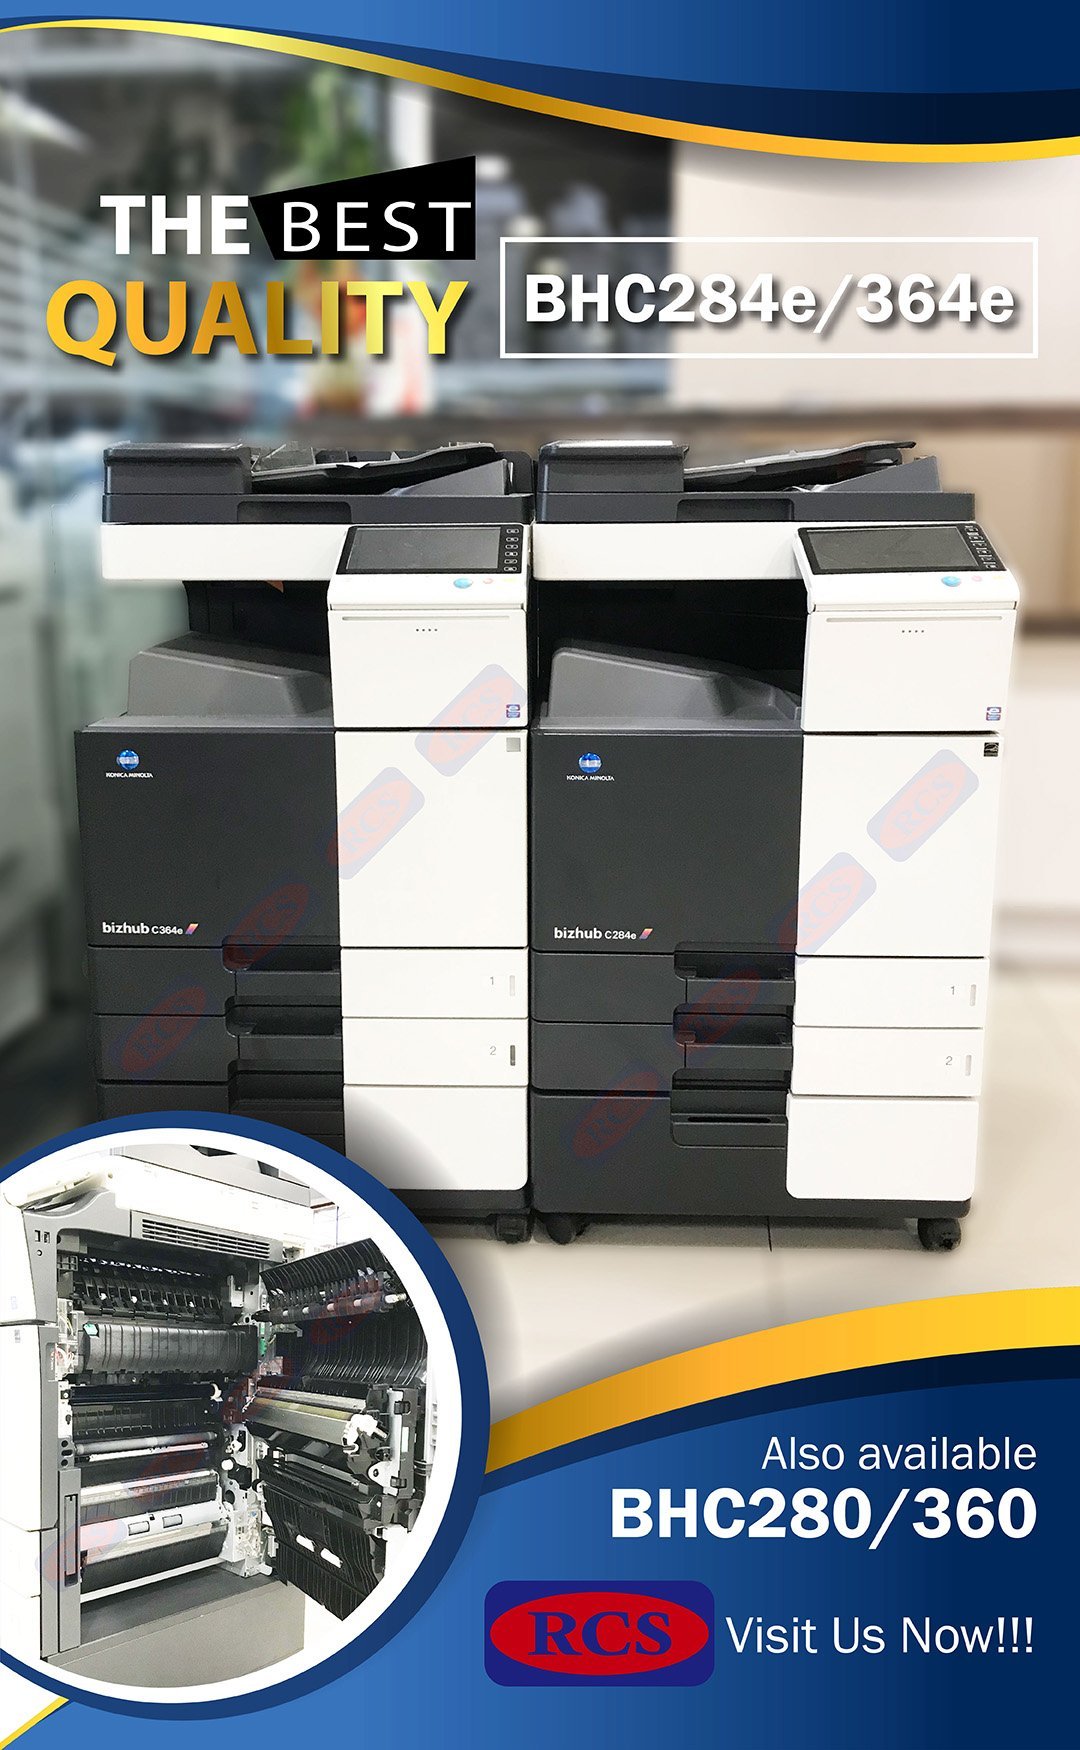 MINOLTA BHC284e/364e BHC280/360 NEW ARRIVAL!!XEROX/RICOH/CANON RECONDITIONED COPIER WHOLESALE